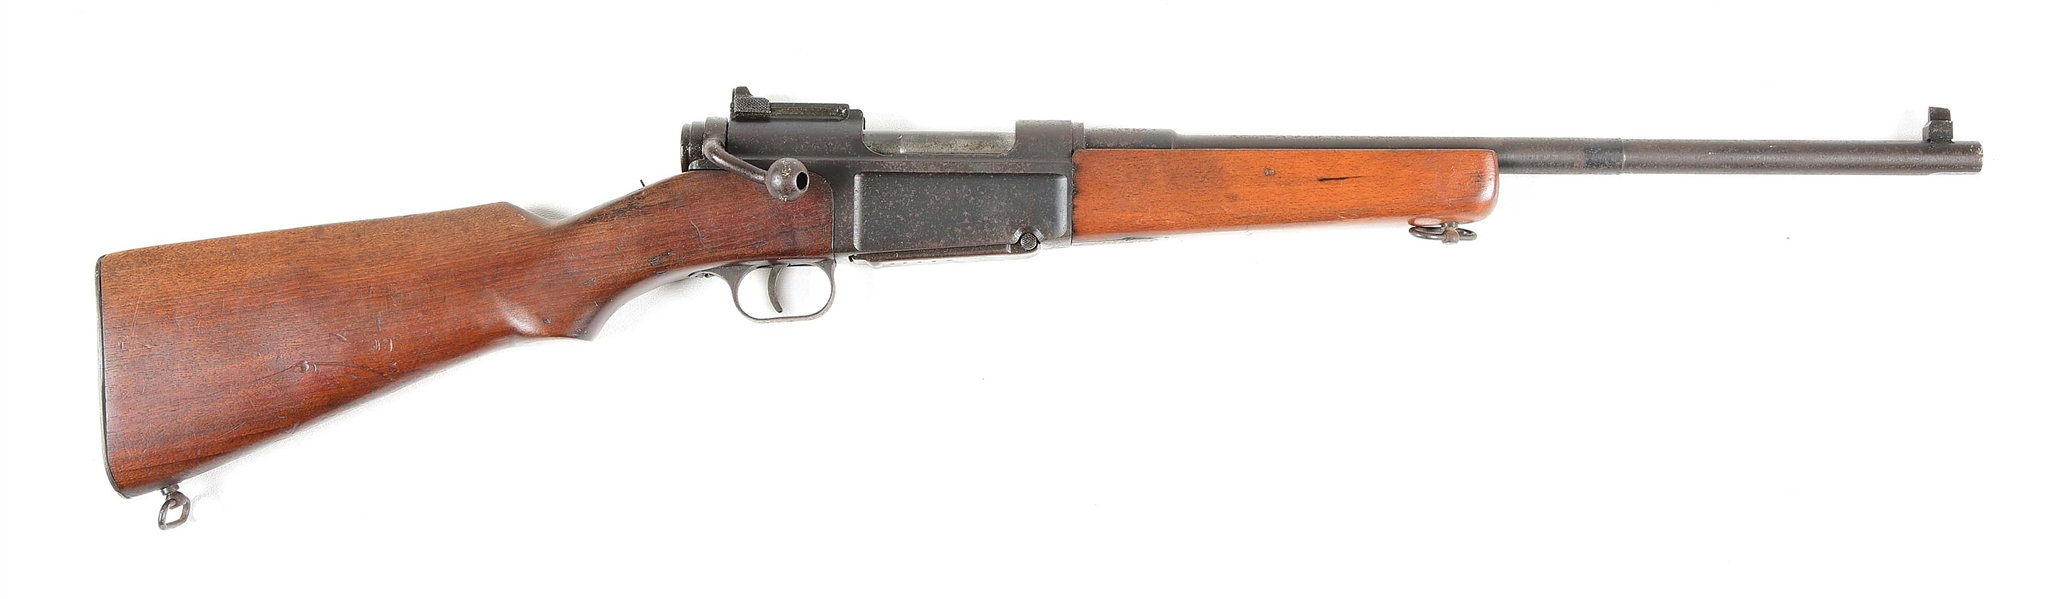 (C) ST. ETIENNE MAS 36 SPORTER BOLT ACTION RIFLE.